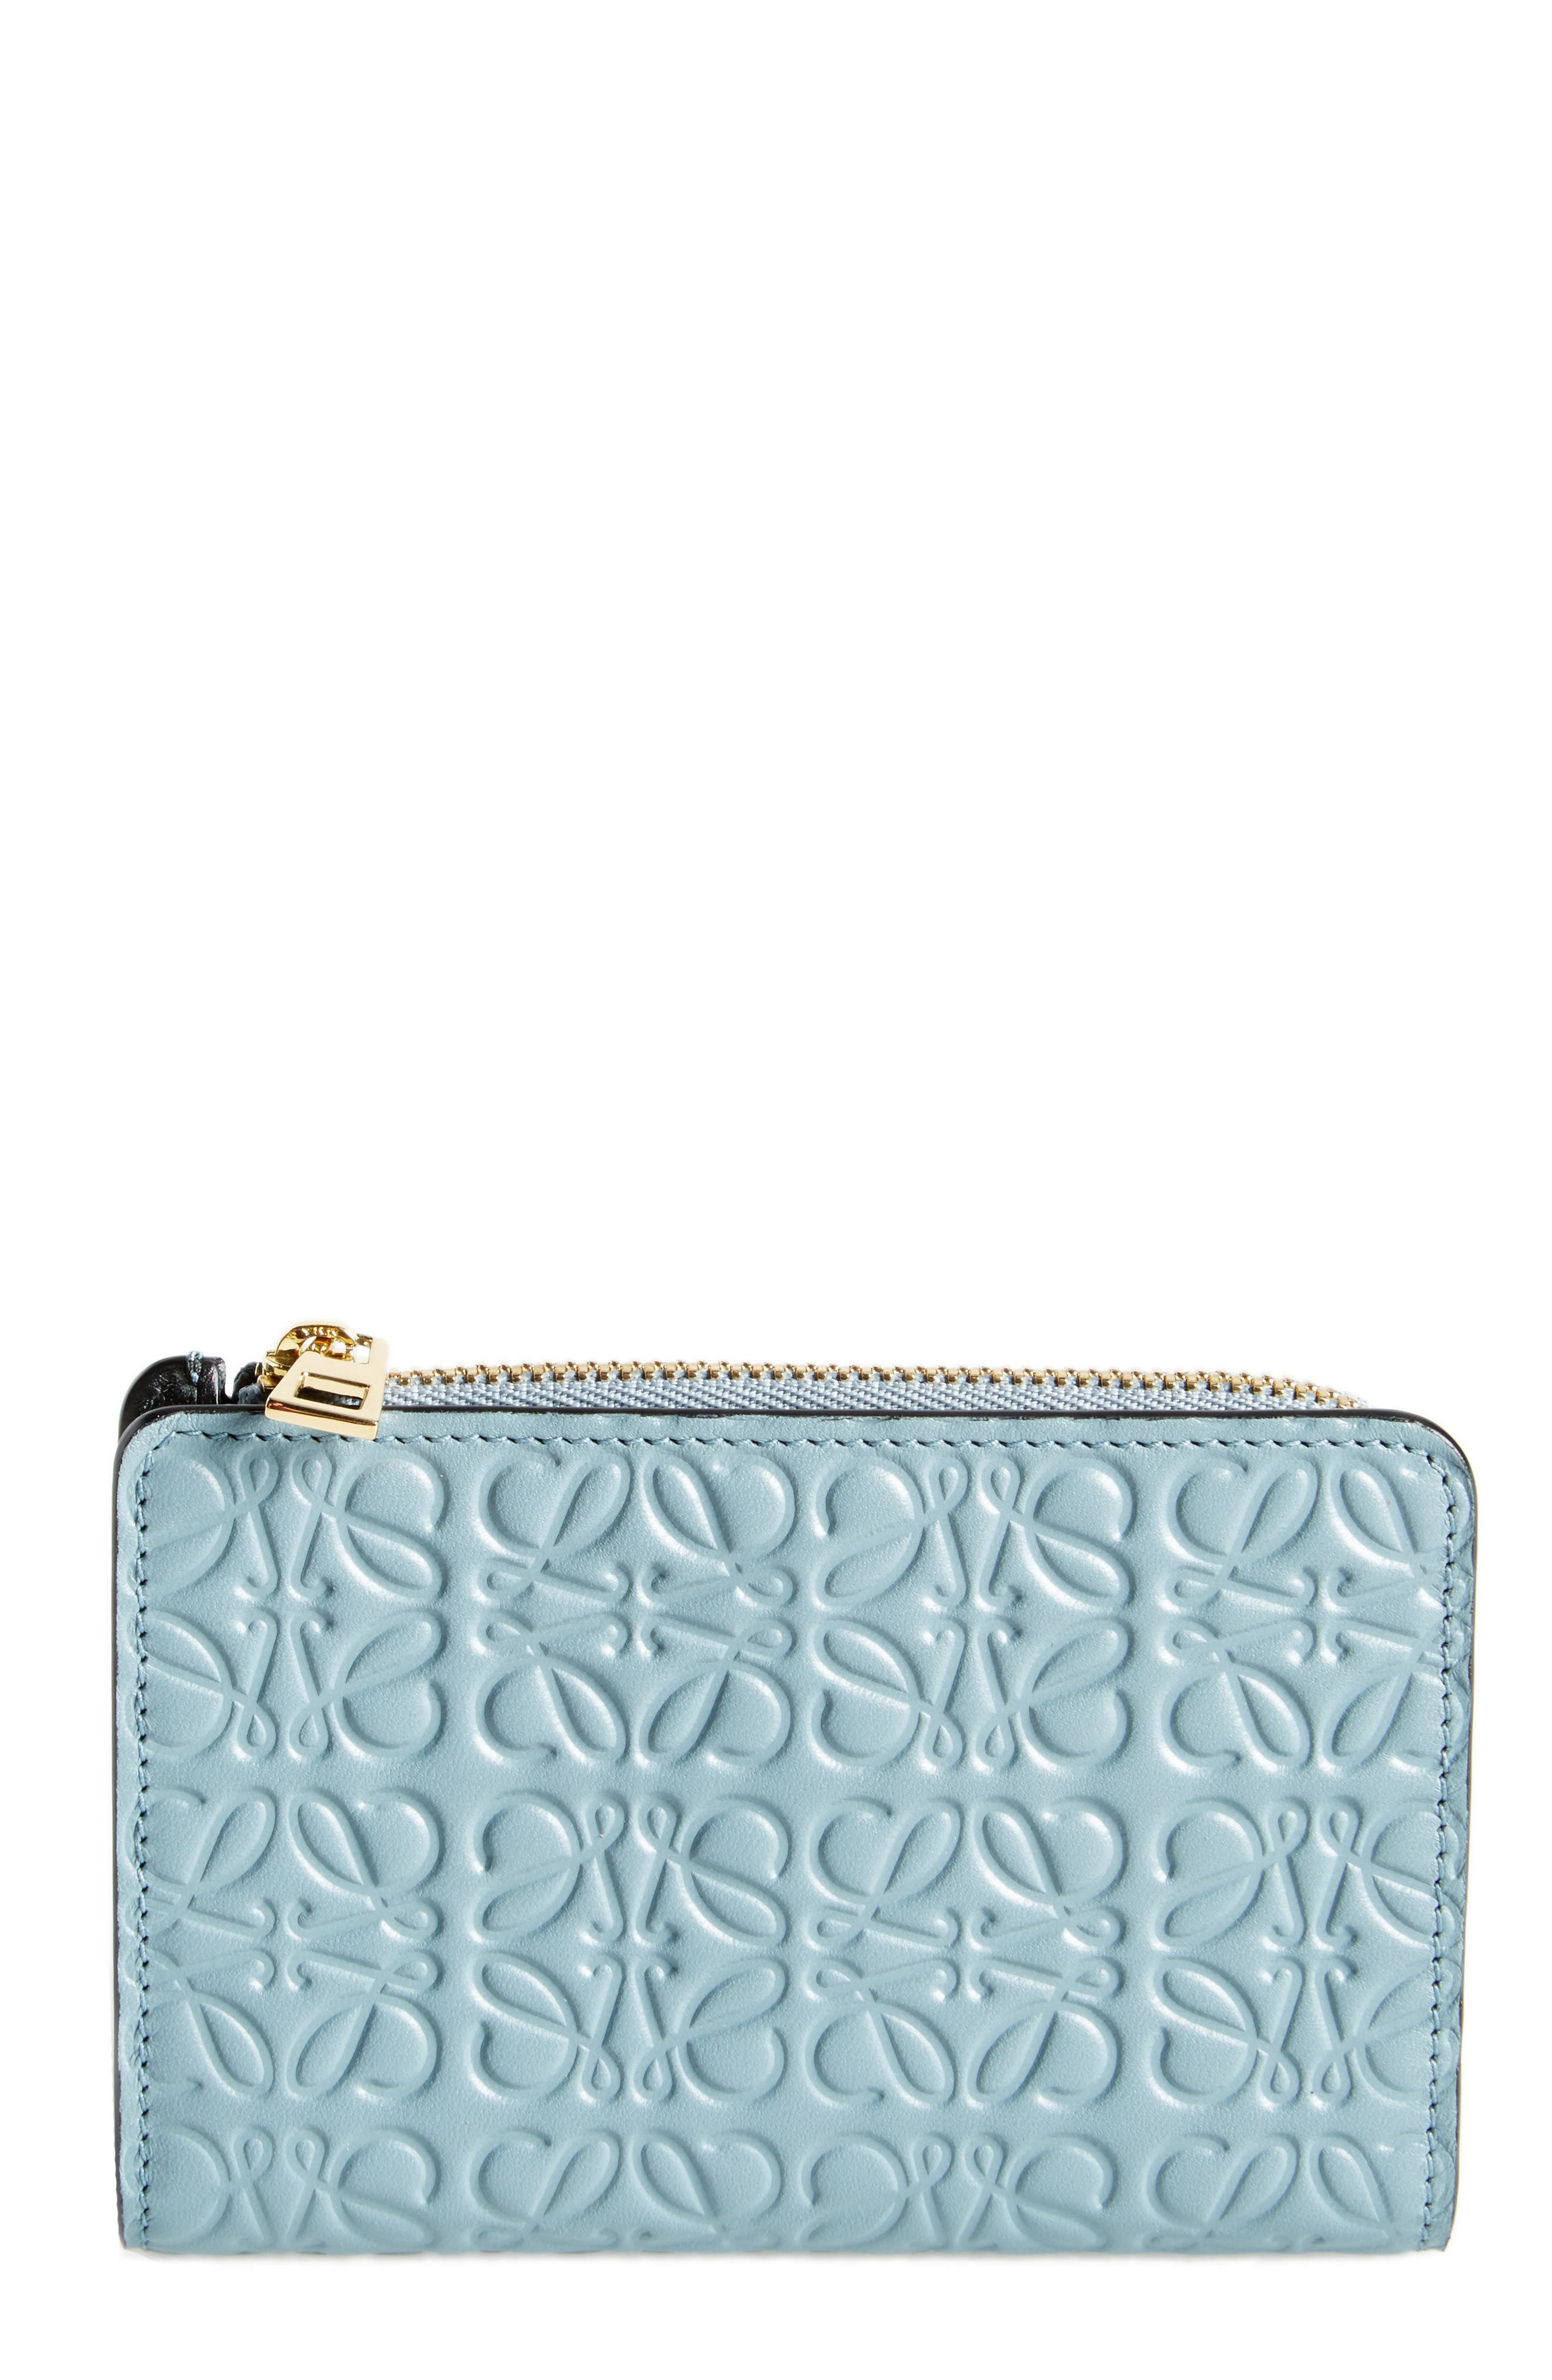 Small Leather Zip Wallet,                         Main,                         color, Stone Blue